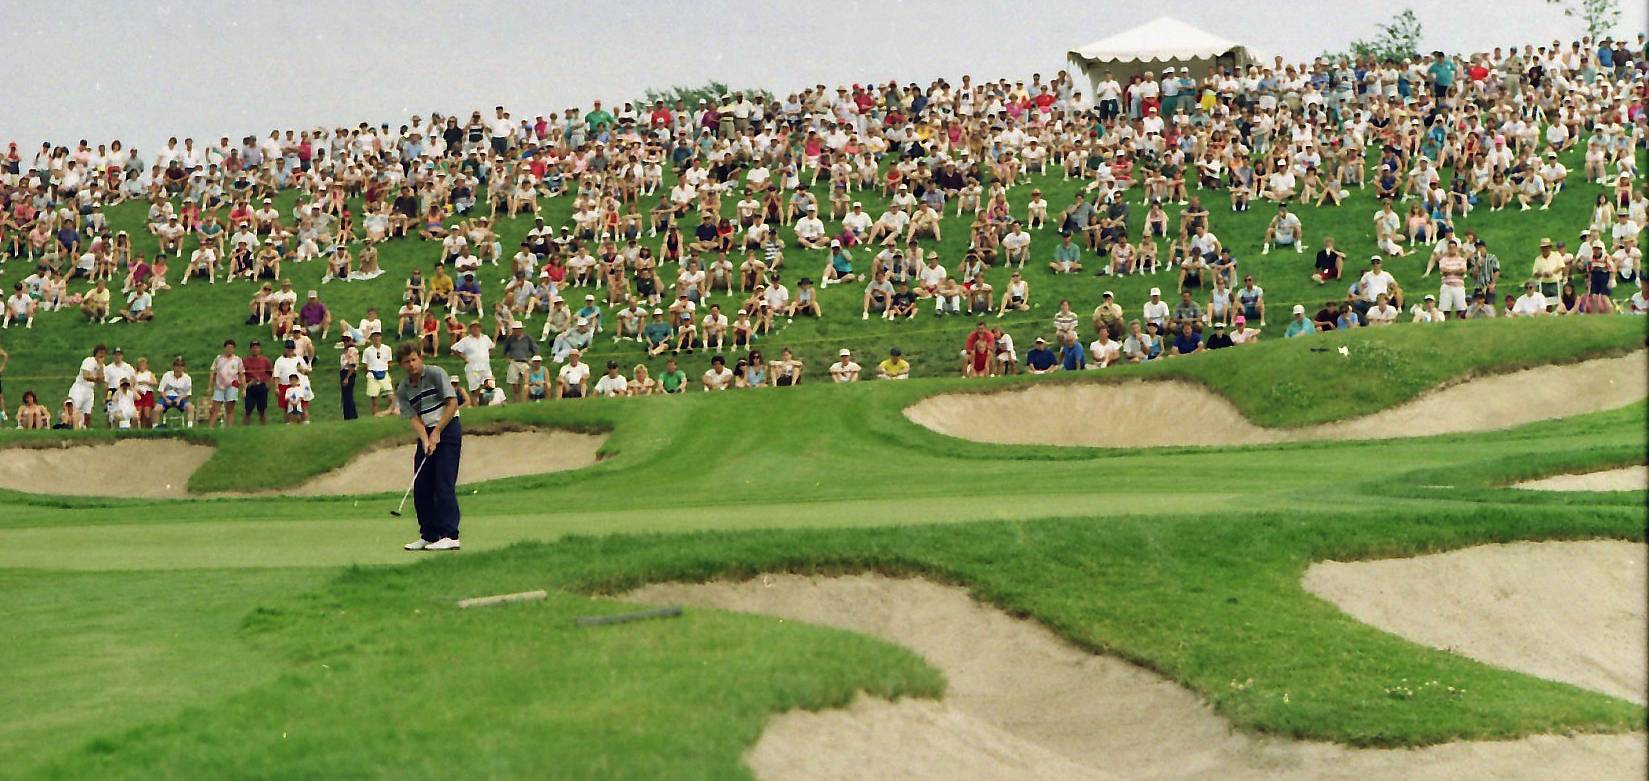 Images Tbt Gallery Looks Back At Western Open Golf Tournament